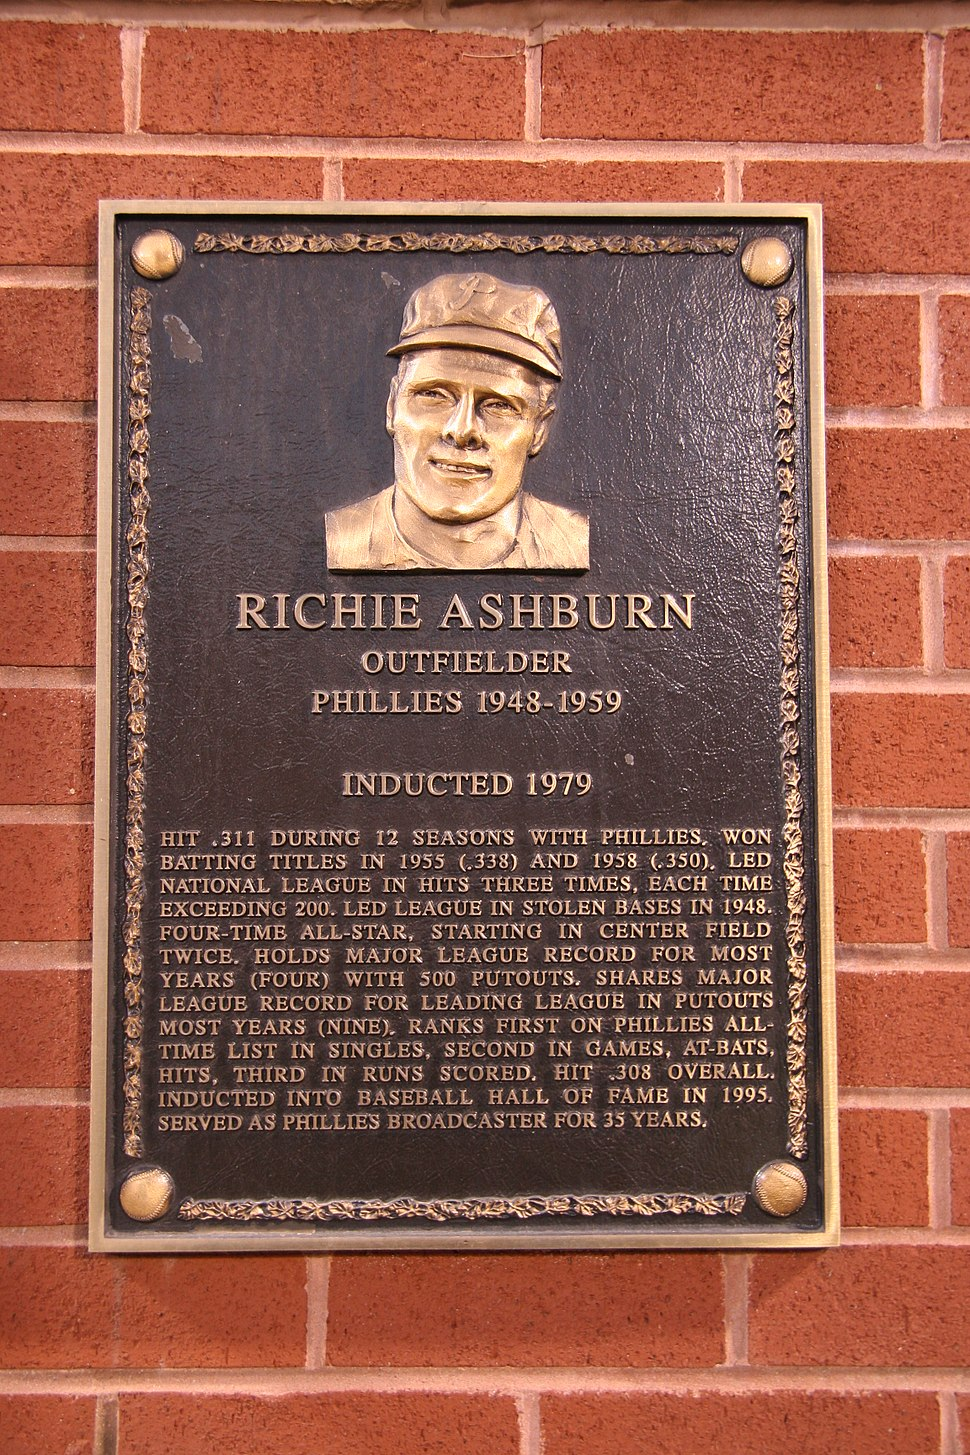 Richie Ashburn plaque